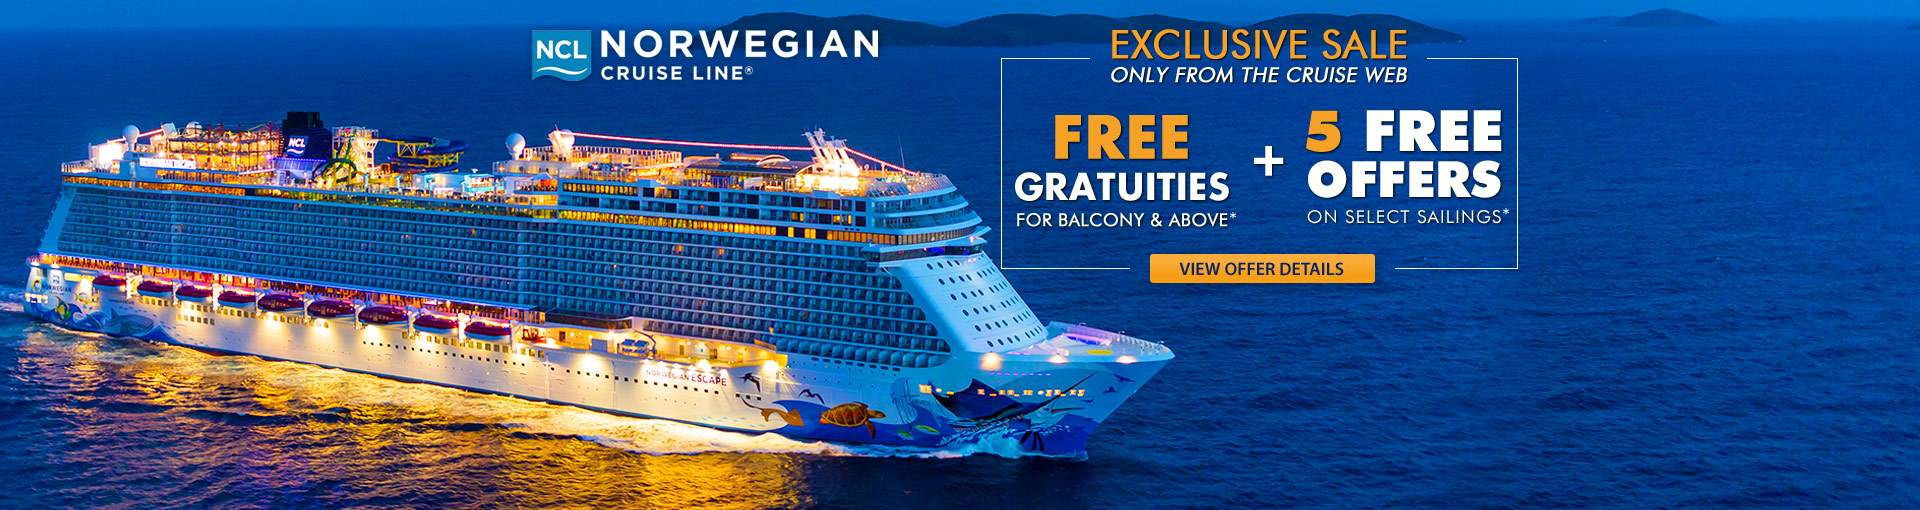 Norwegian Cruise Line: Free Grats + Take All Free